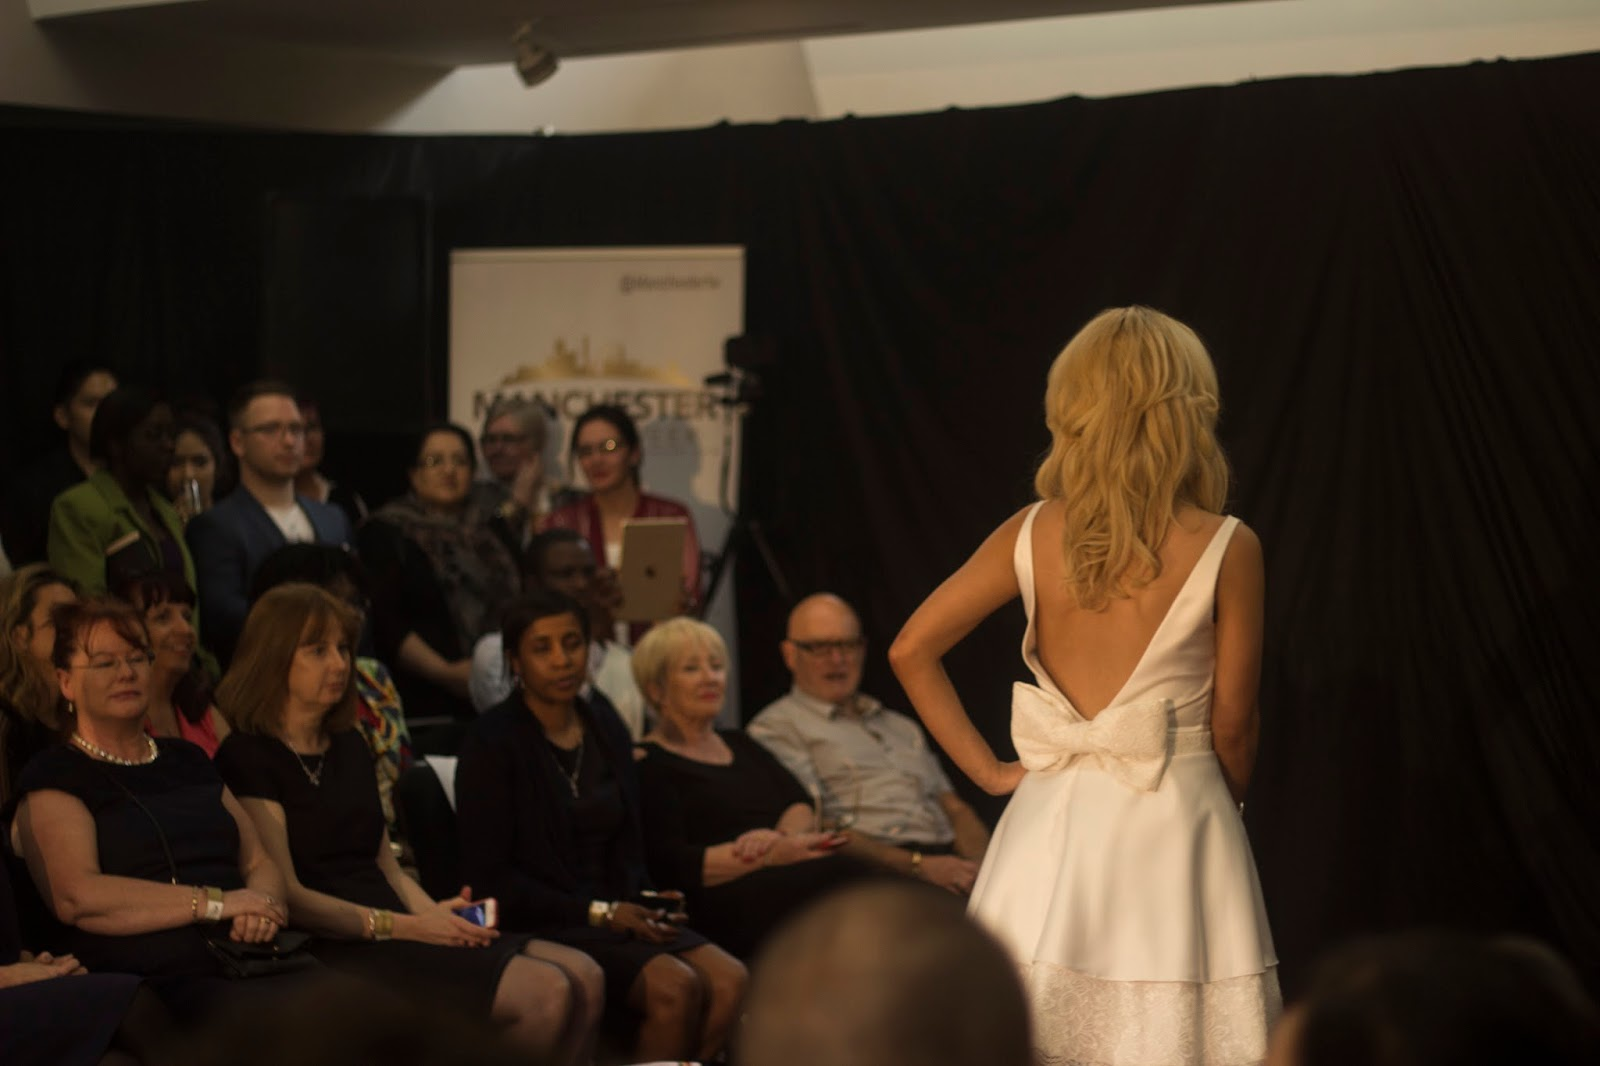 Fashion Pony by Karina So. at FashionE Manchester Fashion Week 2016 for Ses Rêveries